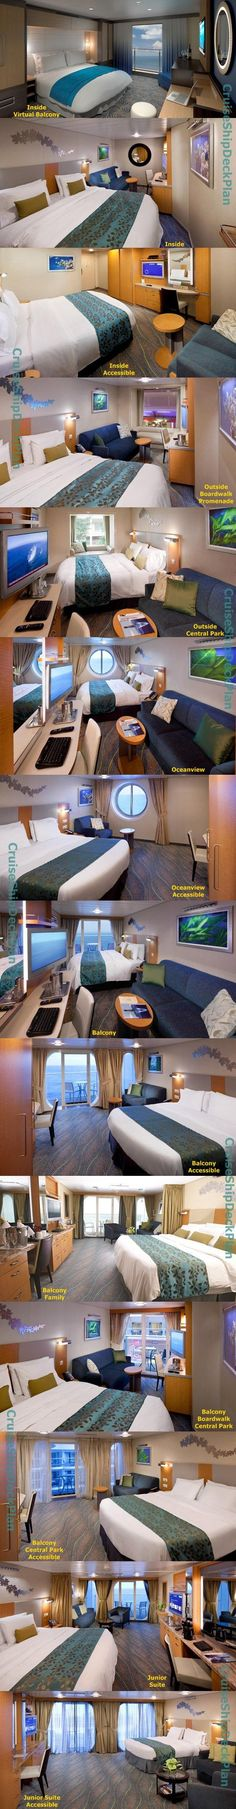 🌎🌏🎈 Get a cruise for half price or even for free!💟 Real deal!🚢 Watch the video in the profile for more details.🚤 Royal Caribbean Allure of the Seas cabins photos